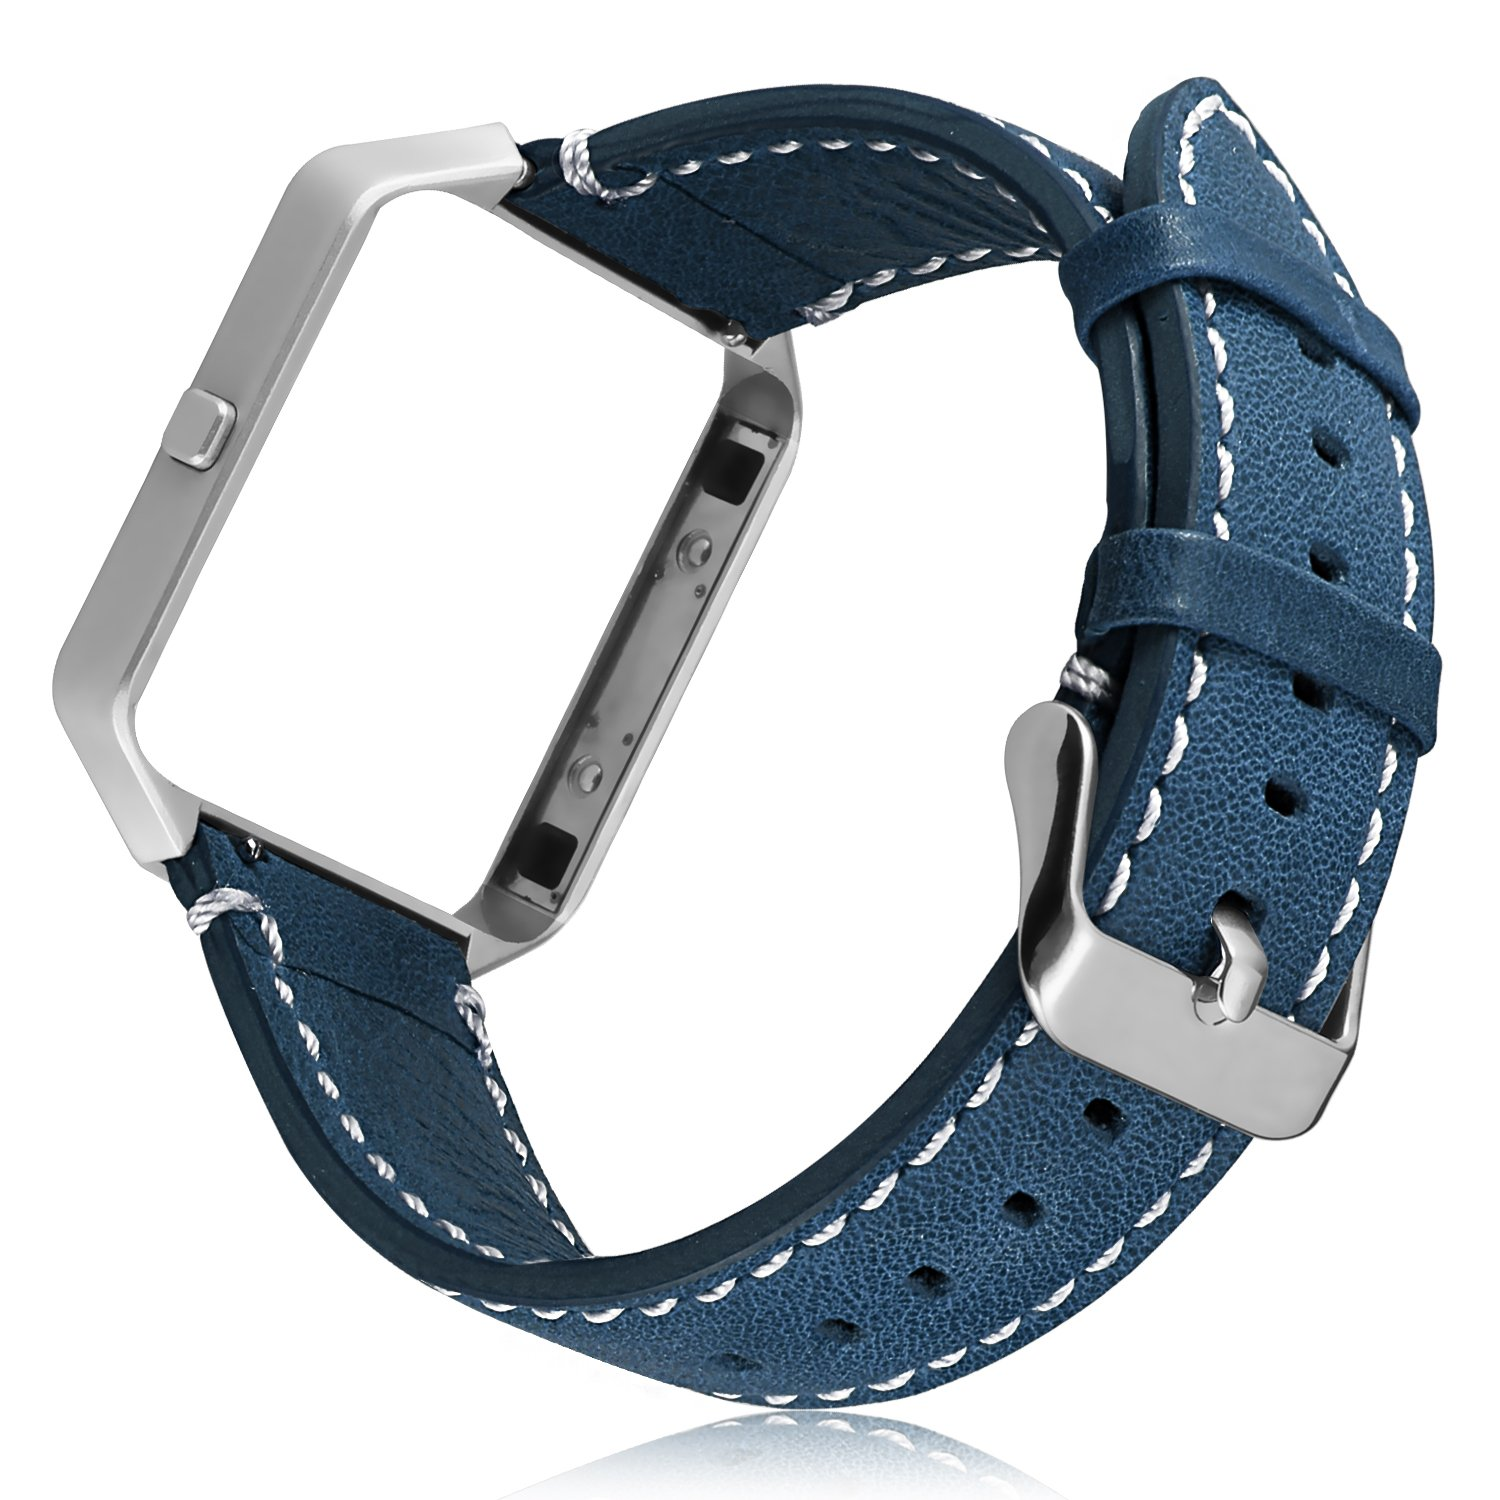 ESeekGo for Fitbit Blaze Bands, Genuine Leather Strap with Metal Frame for Fitbit Blaze Smart Watch Accessory Replacement Wristband (No Tracker,Blue Band + Silver Frame)